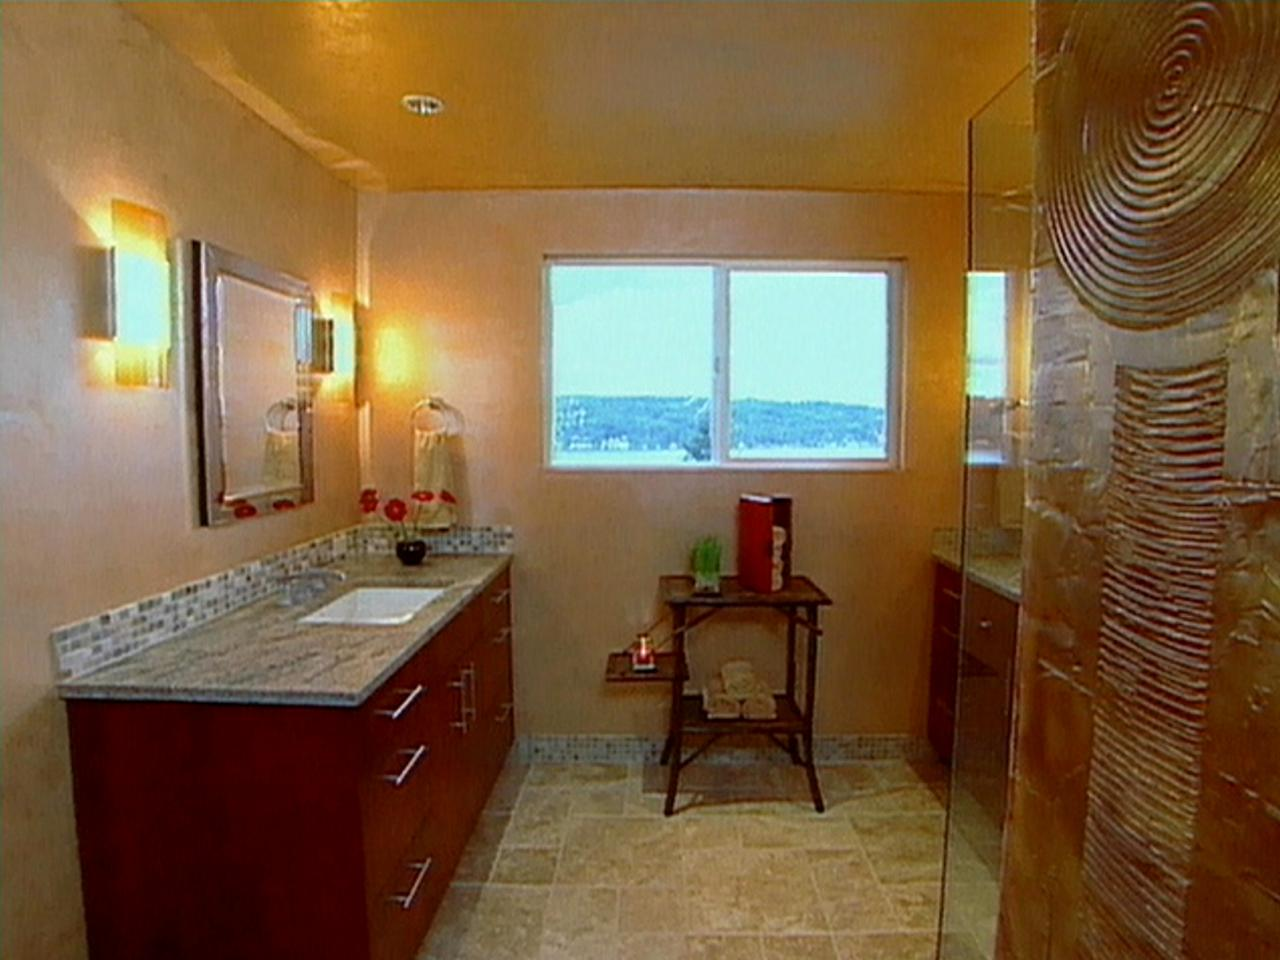 Walk In Tub Designs Pictures Ideas Tips From Hgtv: Making A White Bathroom More Colorful